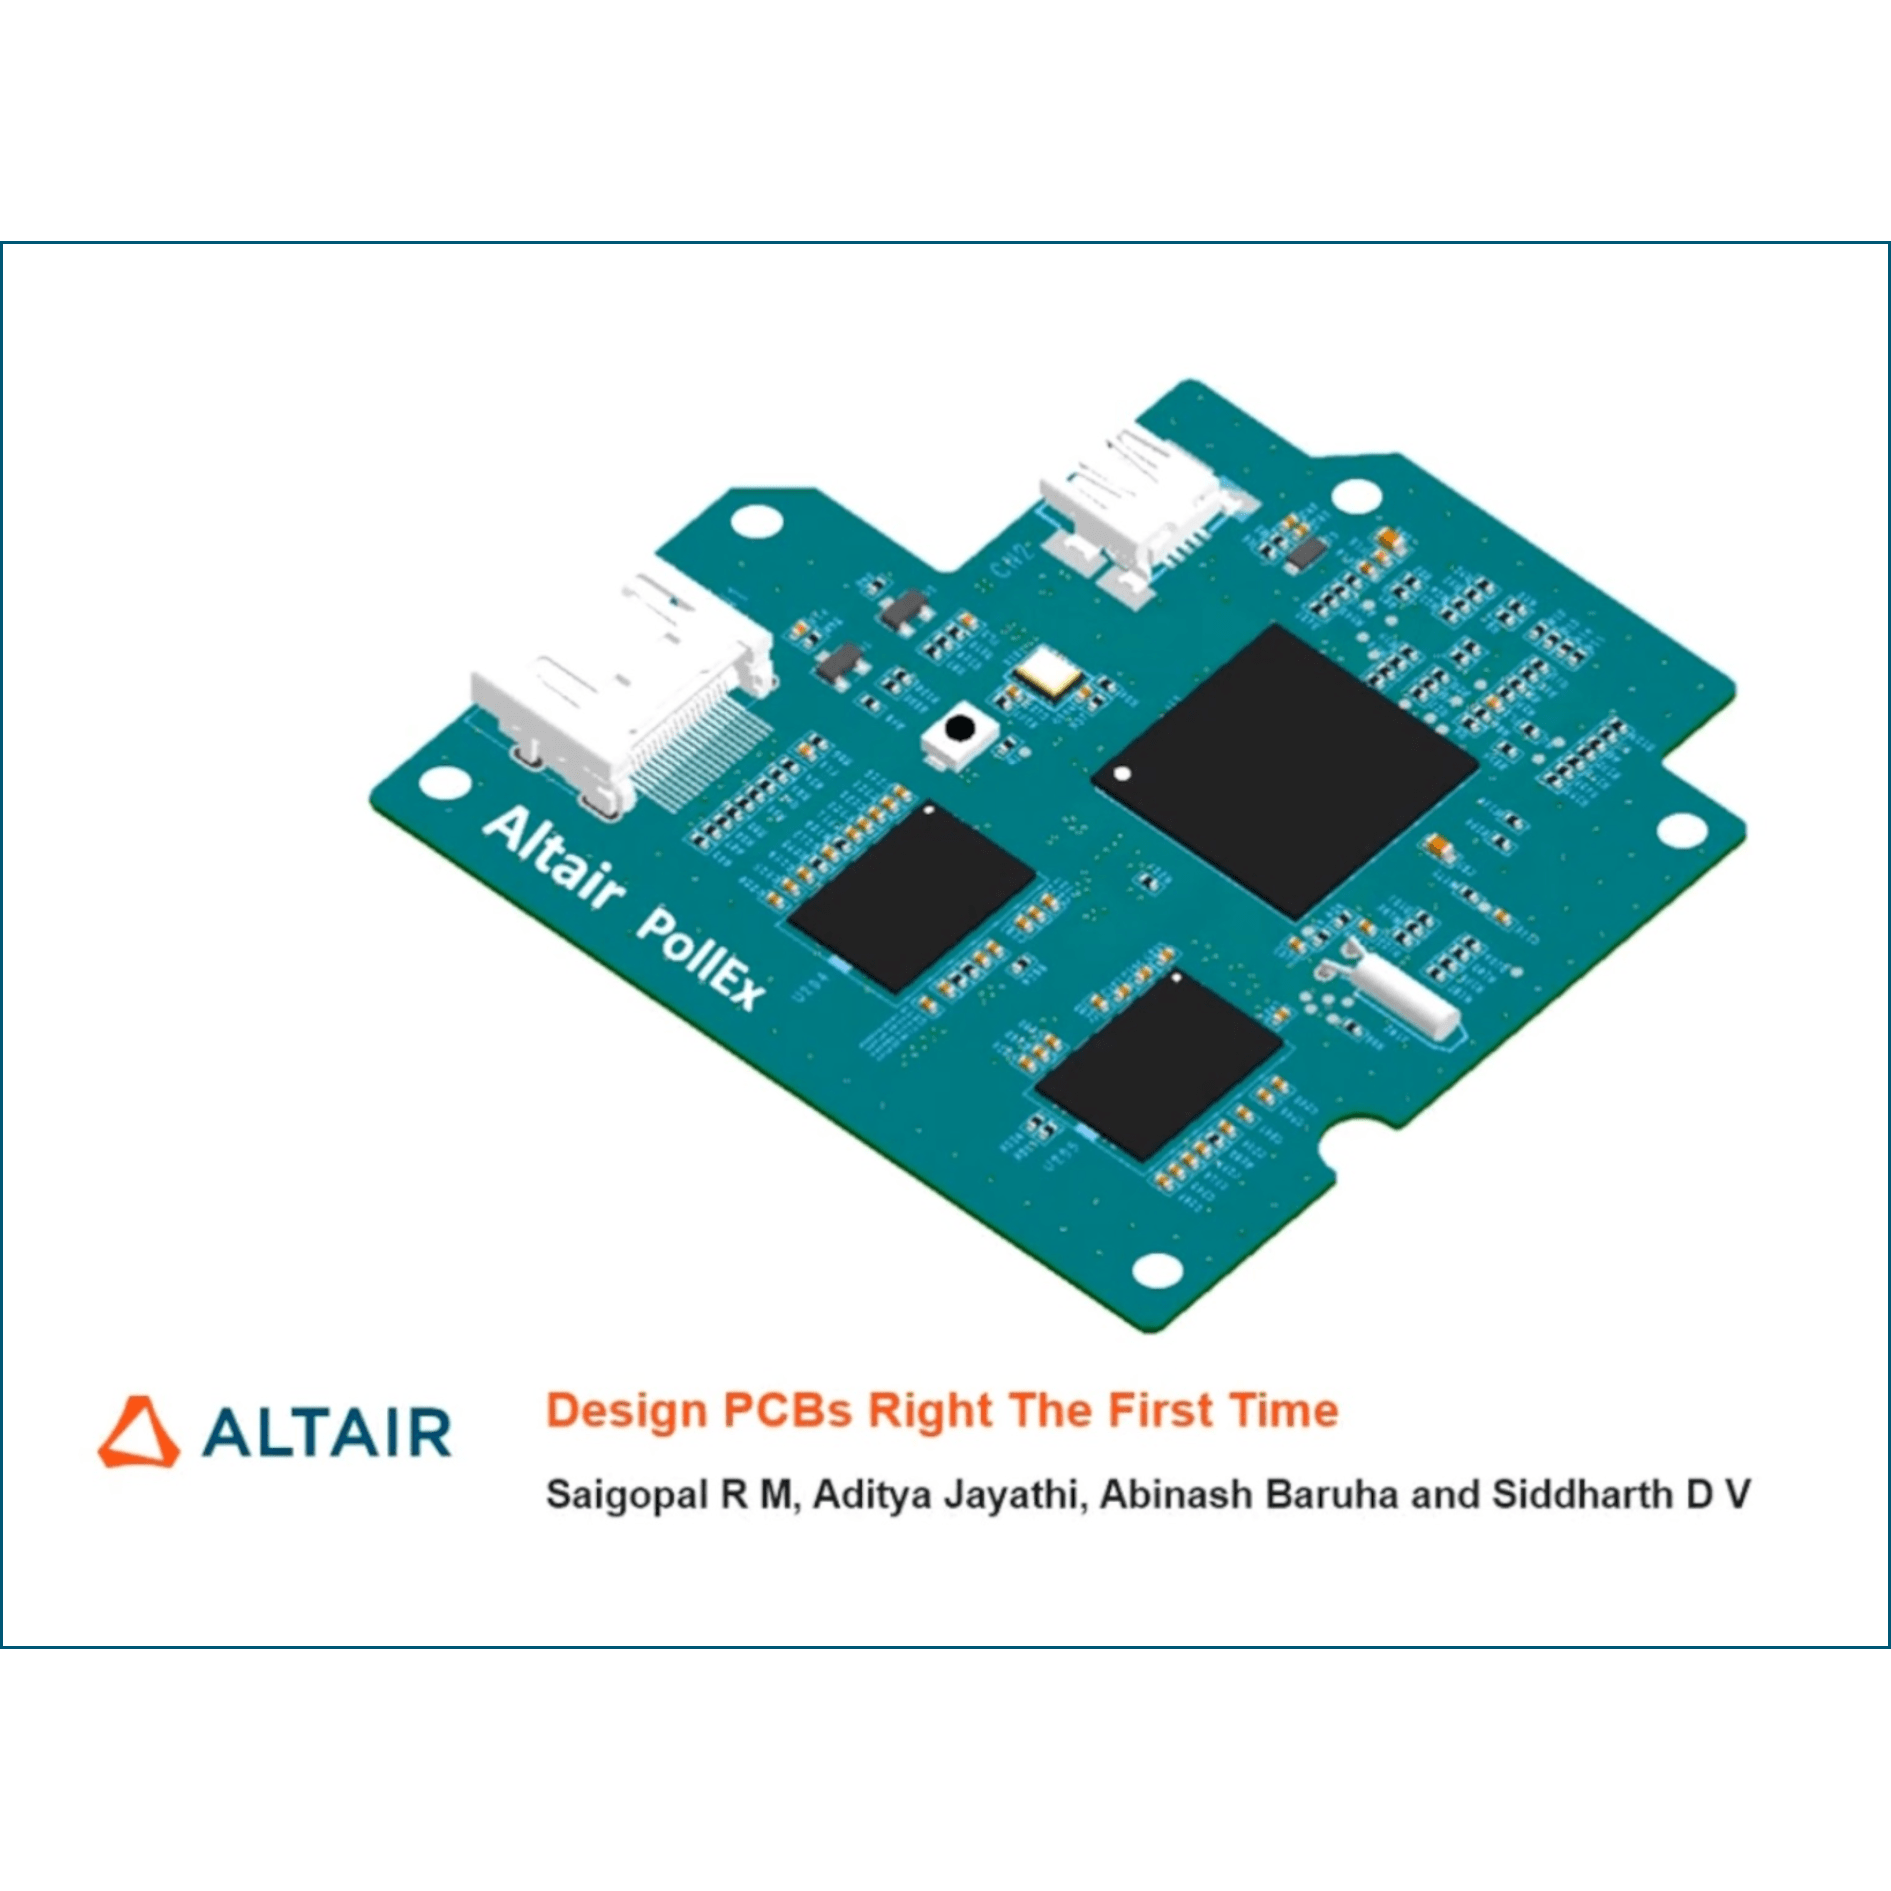 Design PCBs Right the First Time